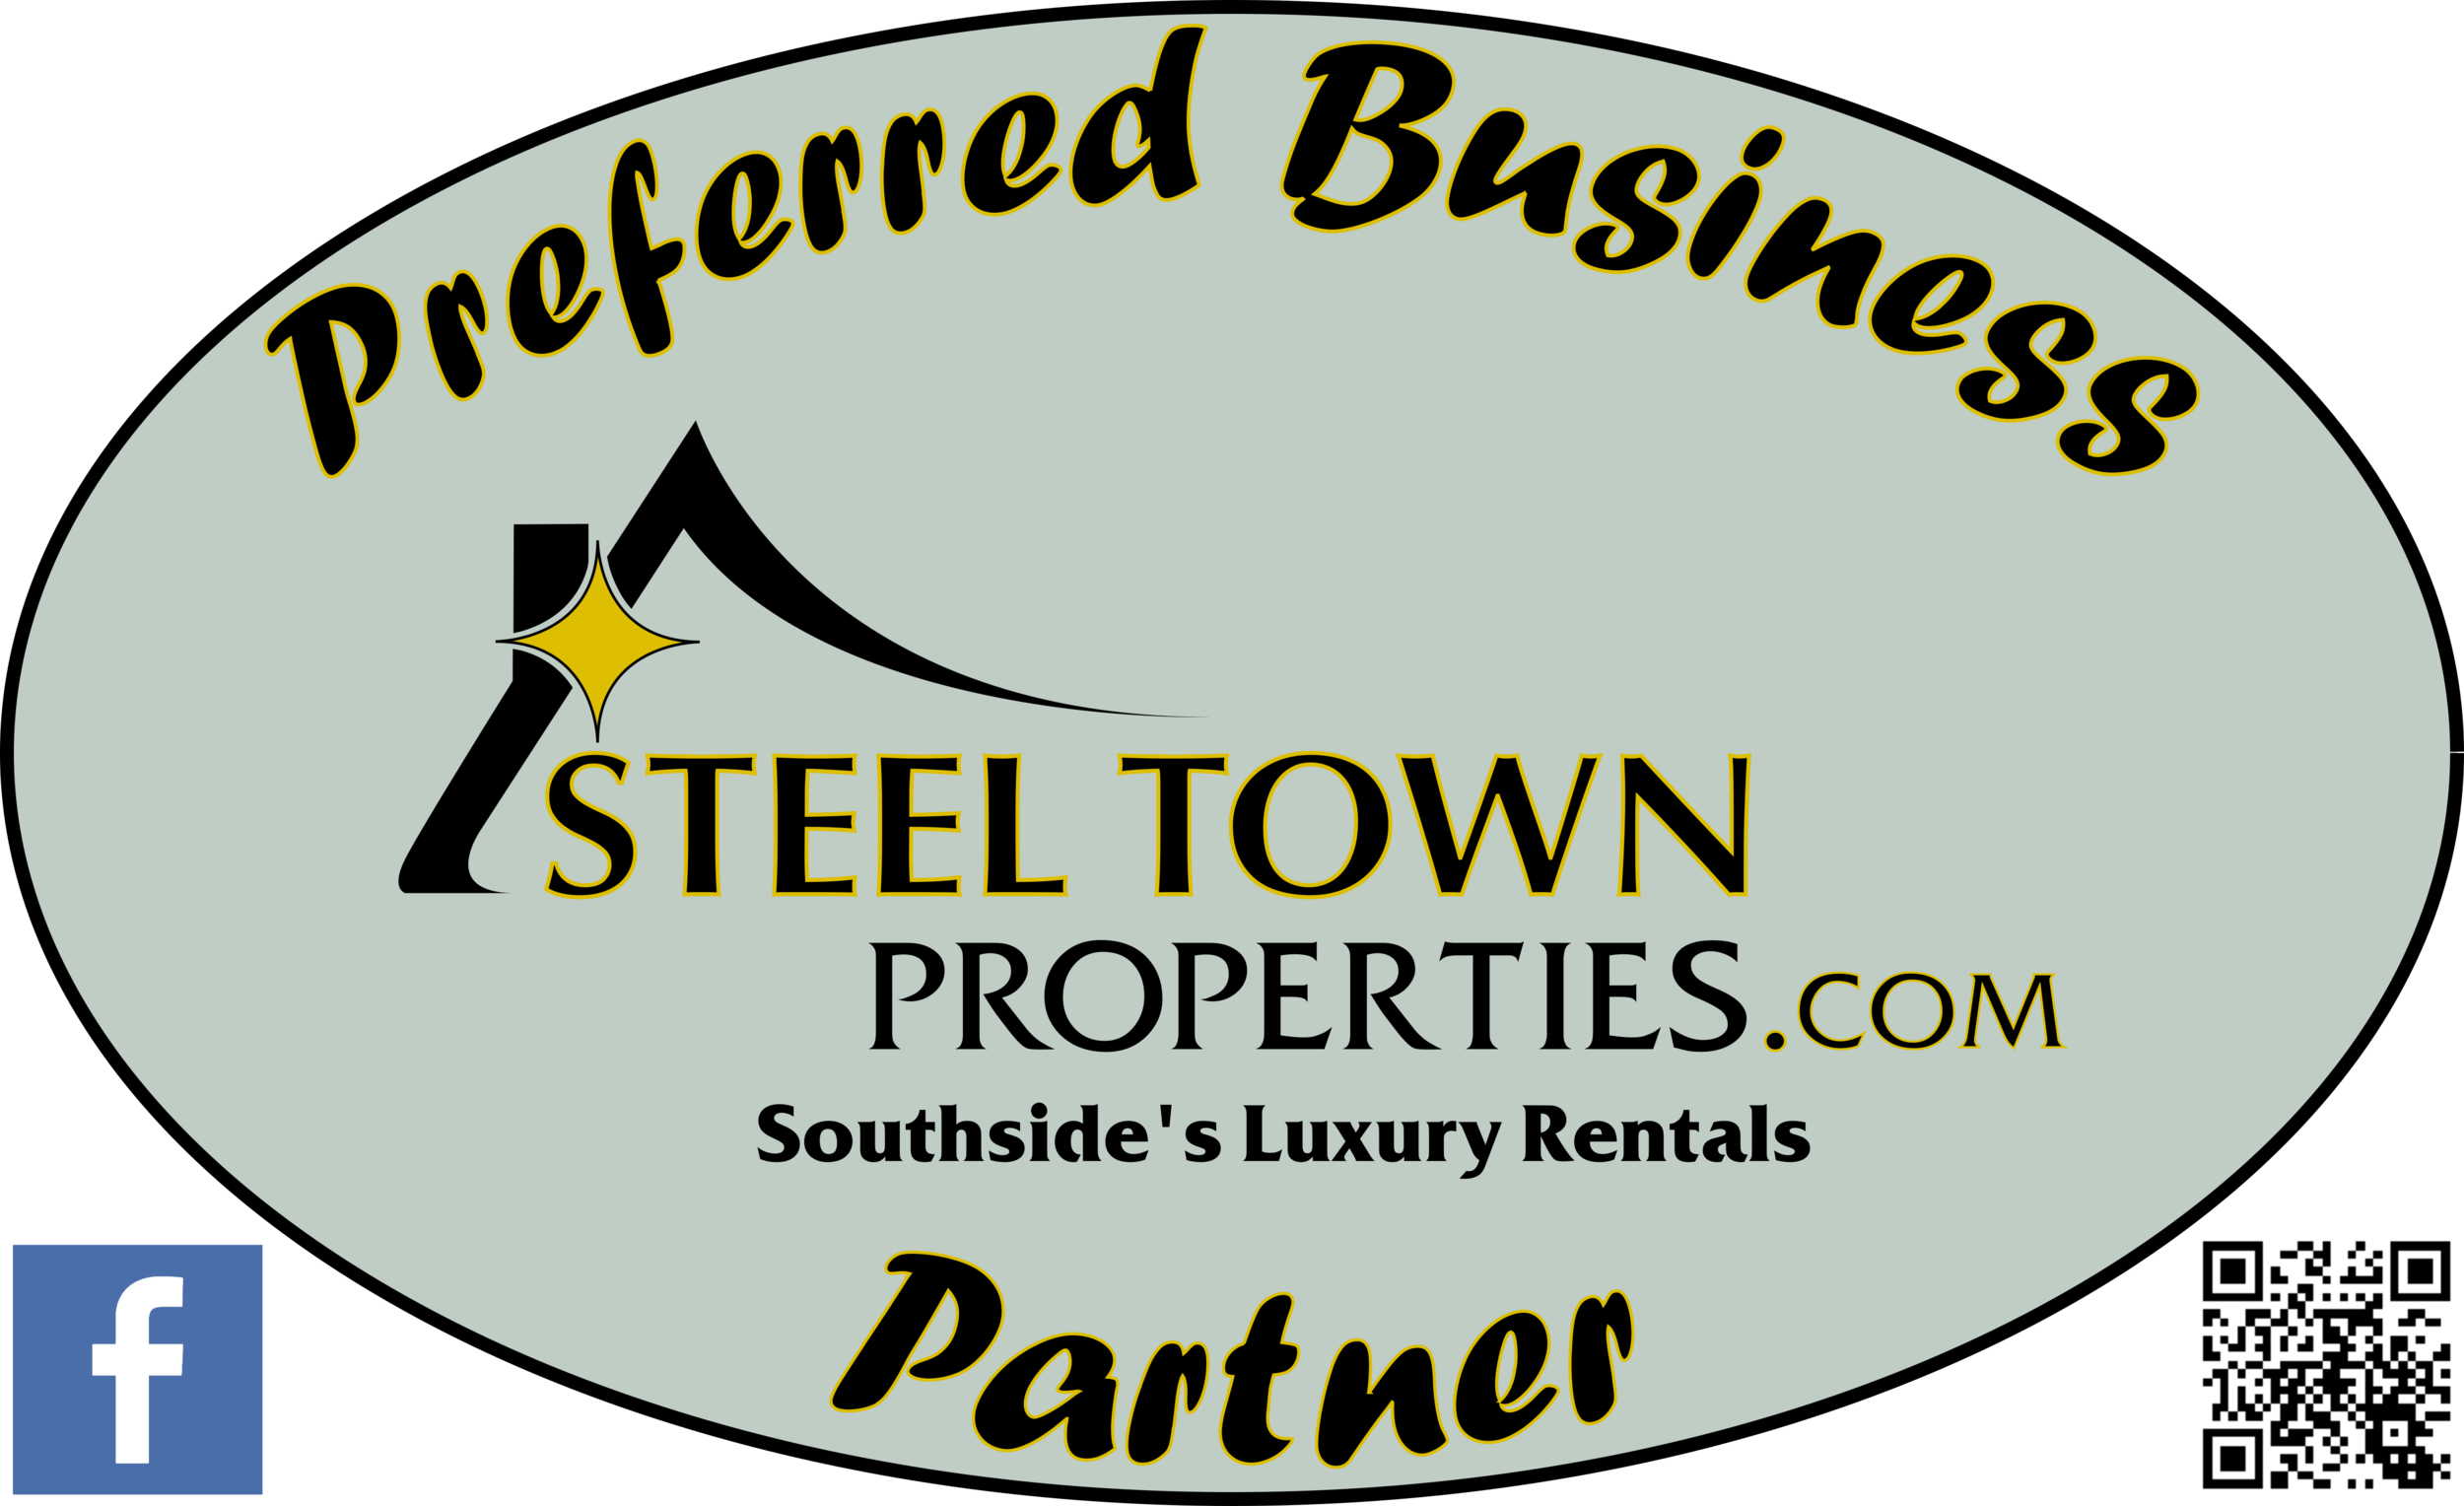 Luxury Rental Company Steeltown Properties in Pittsburgh, Pennsylvania values its Preferred Business Partners